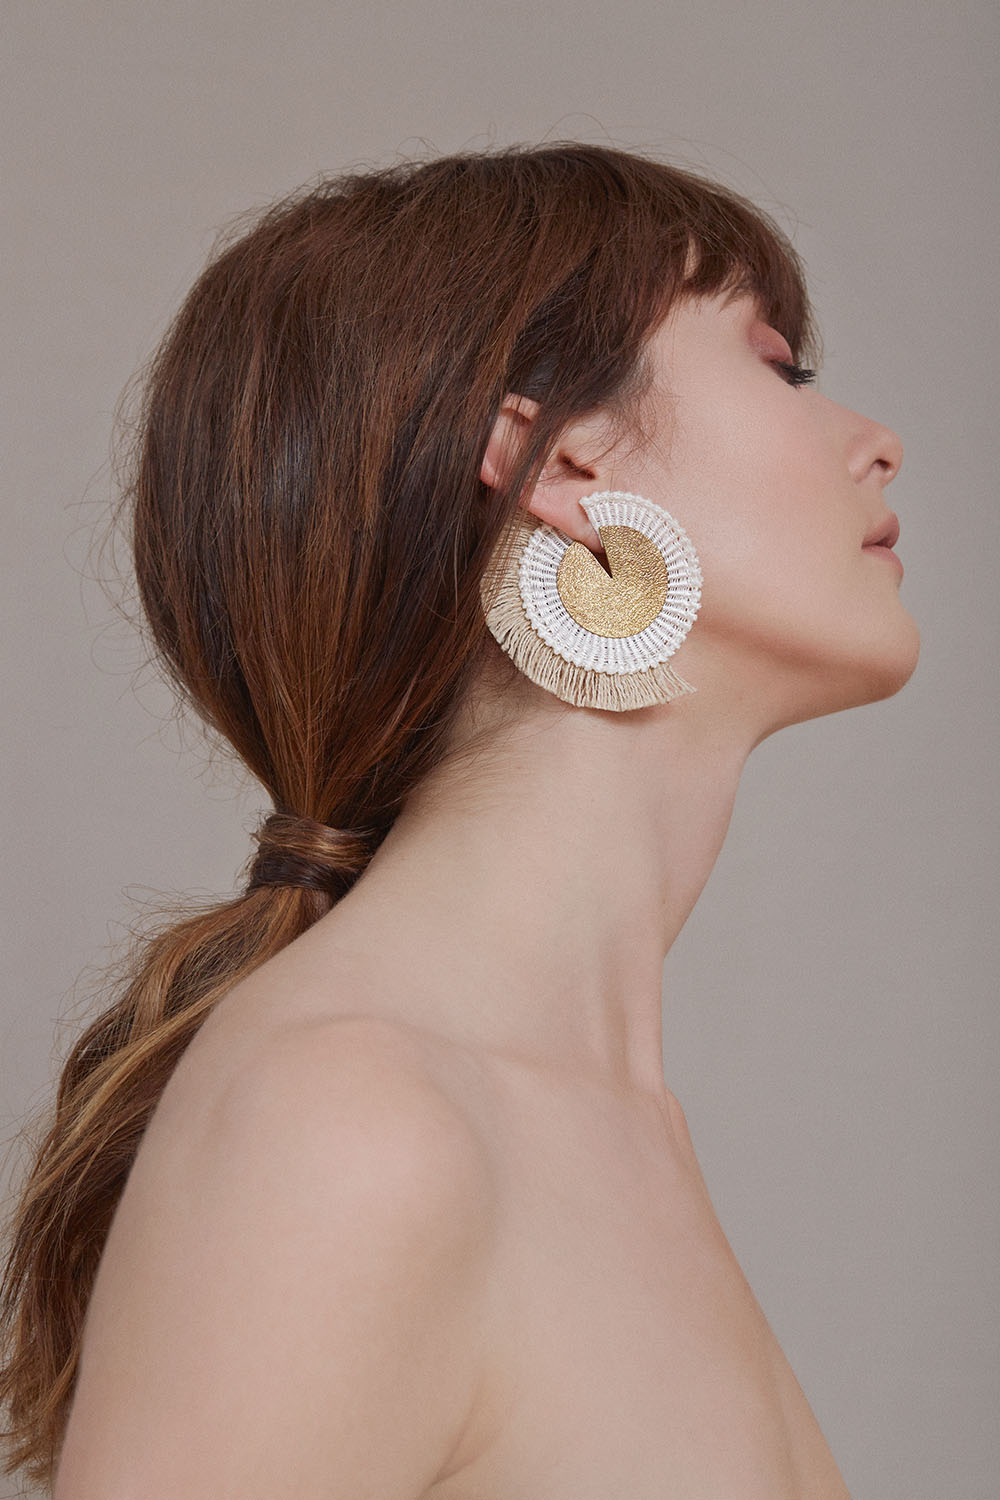 Savannah earrings (click here for details)